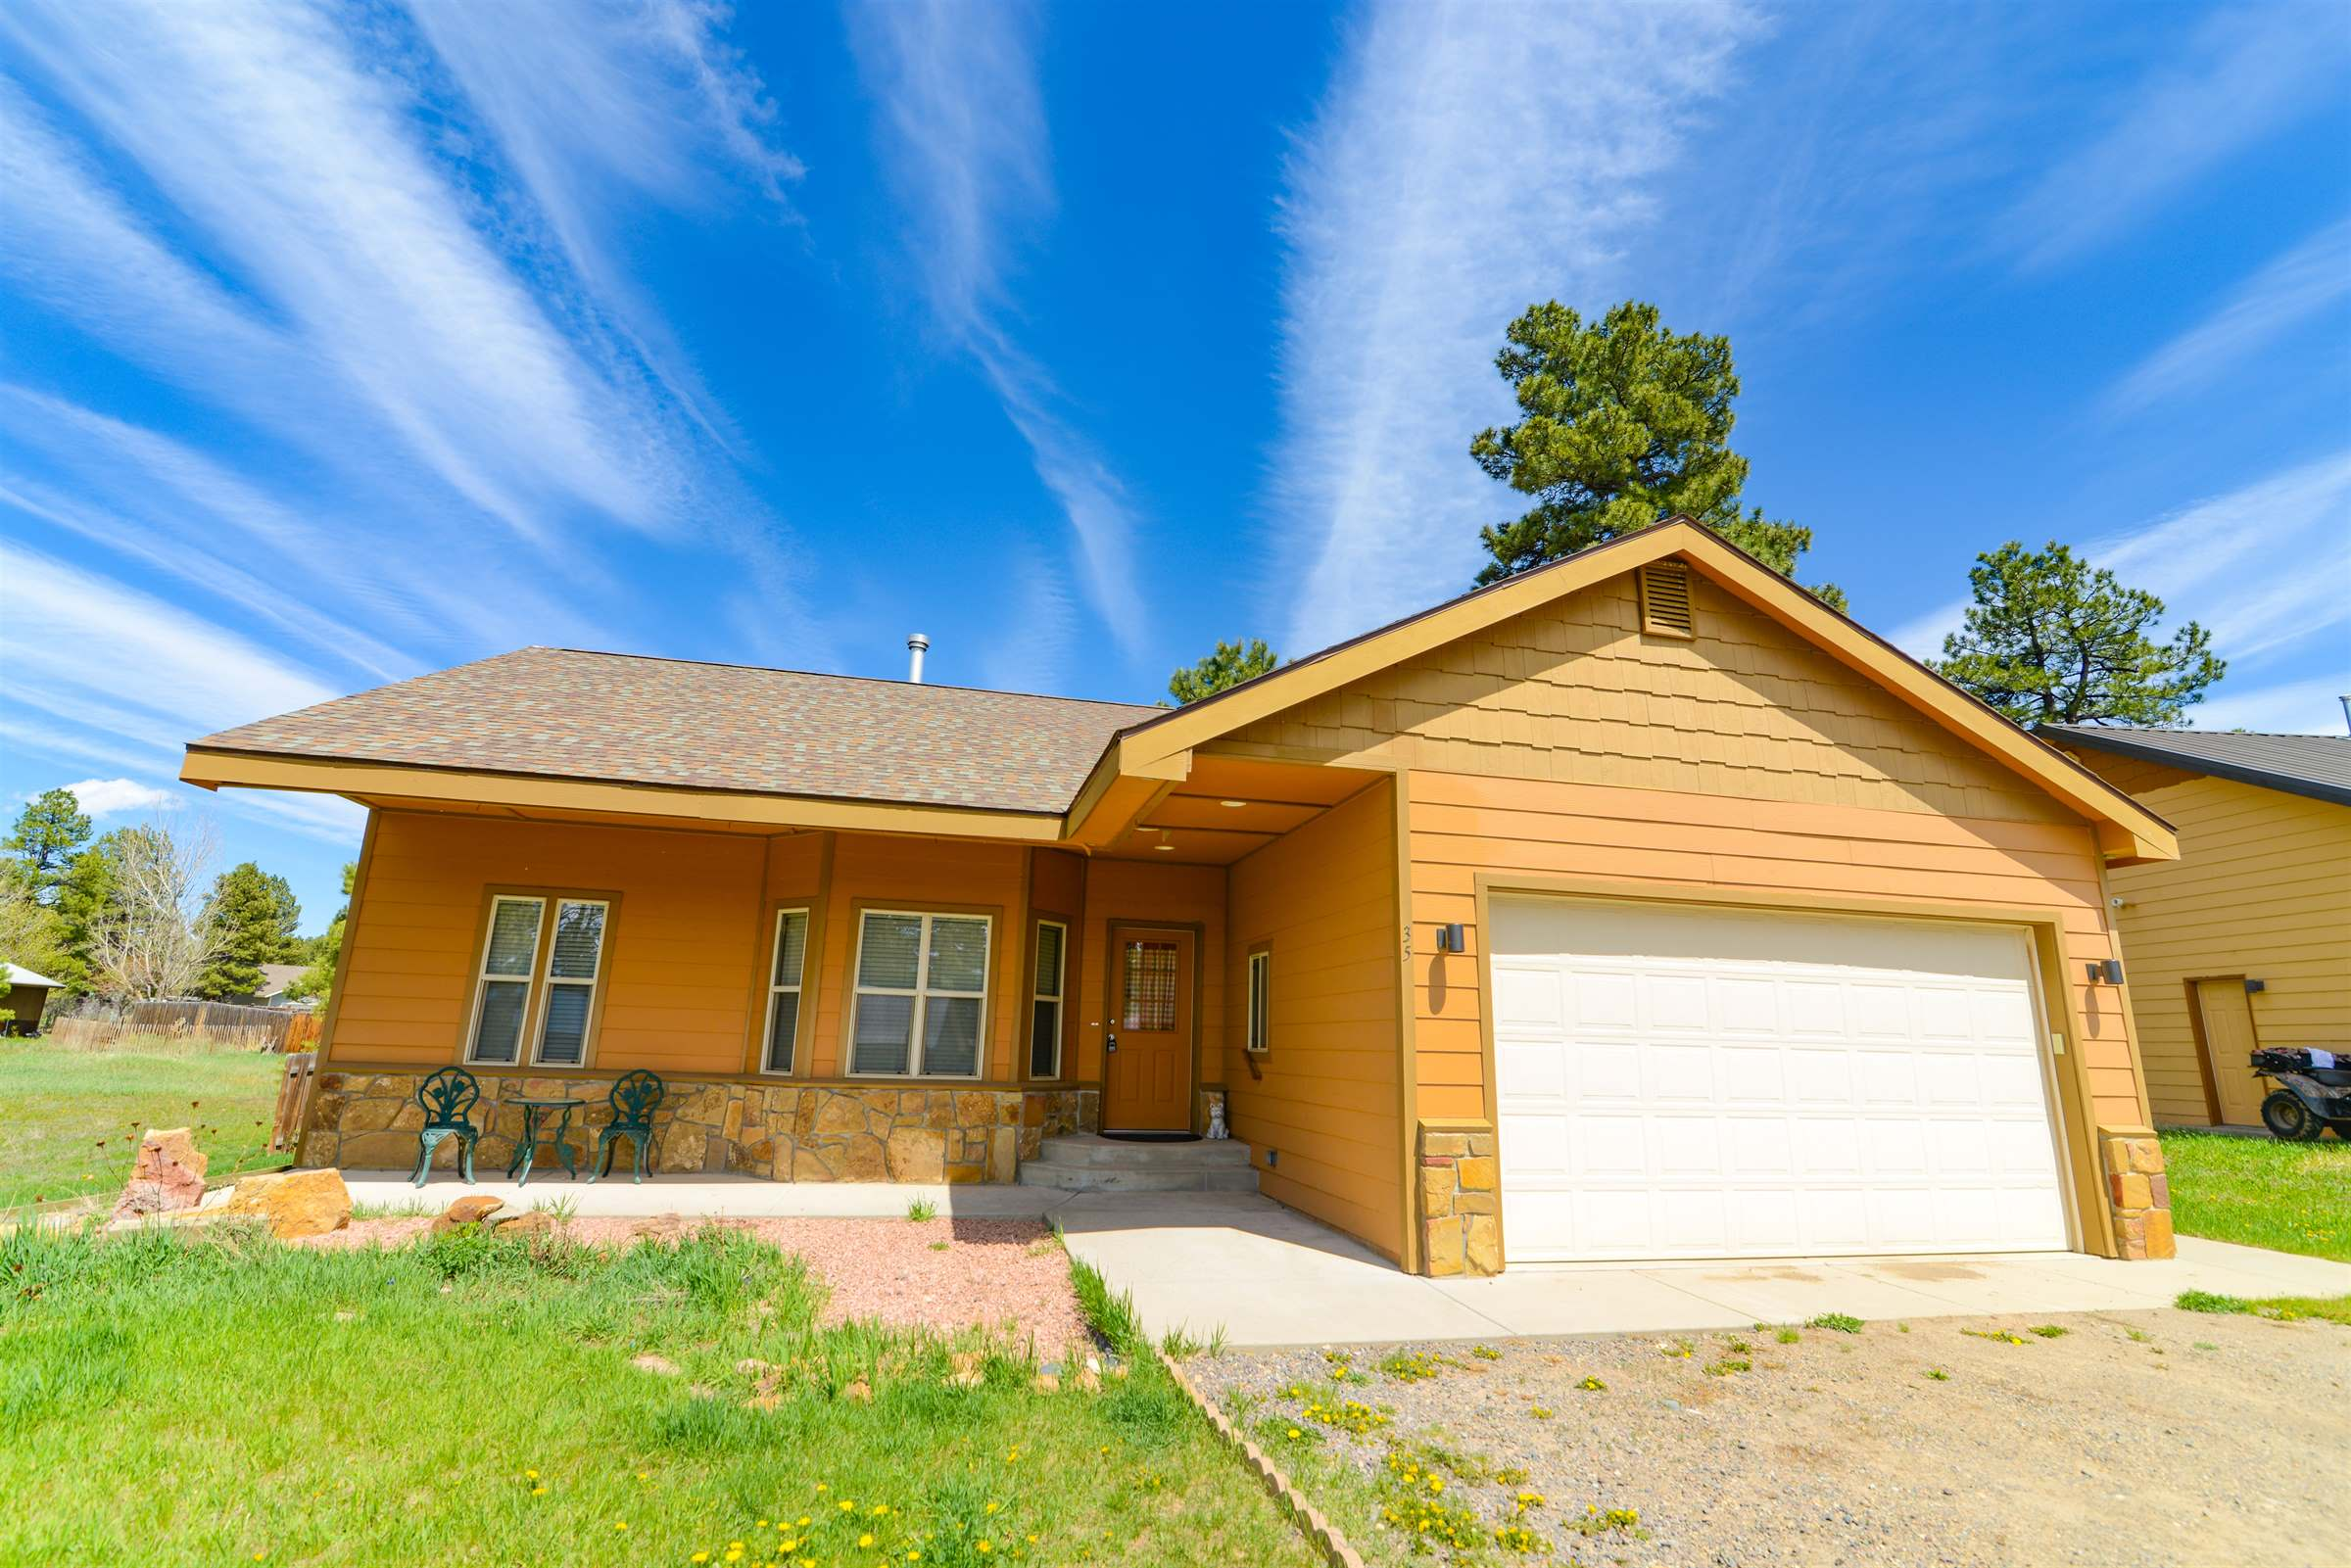 35 Chipper Ct, #Short Term, Pagosa Springs, CO 81147